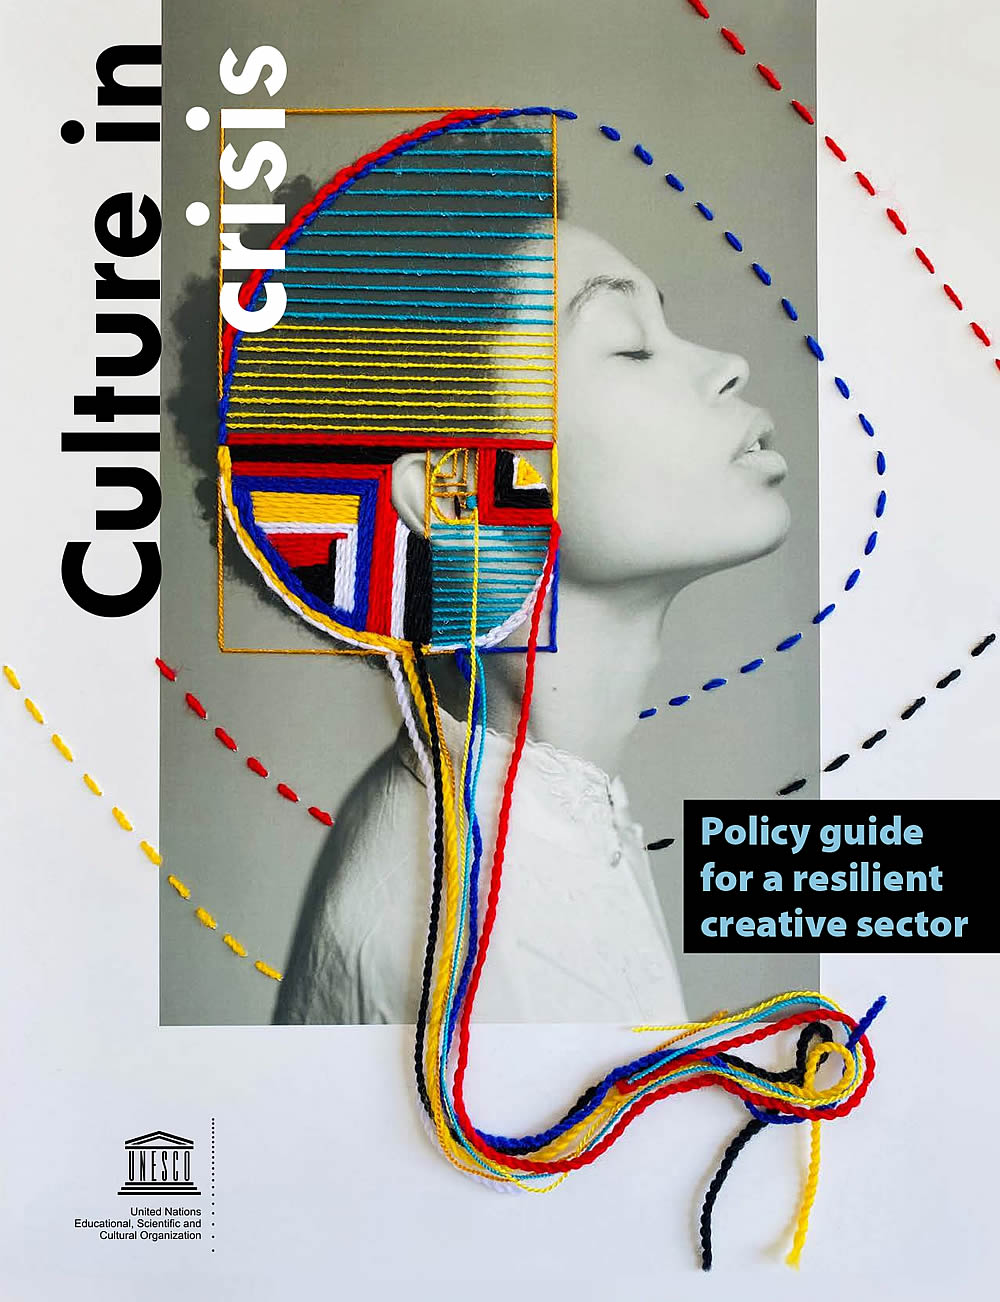 UNESCO policy guide for resilient creative industries beyond COVID-19